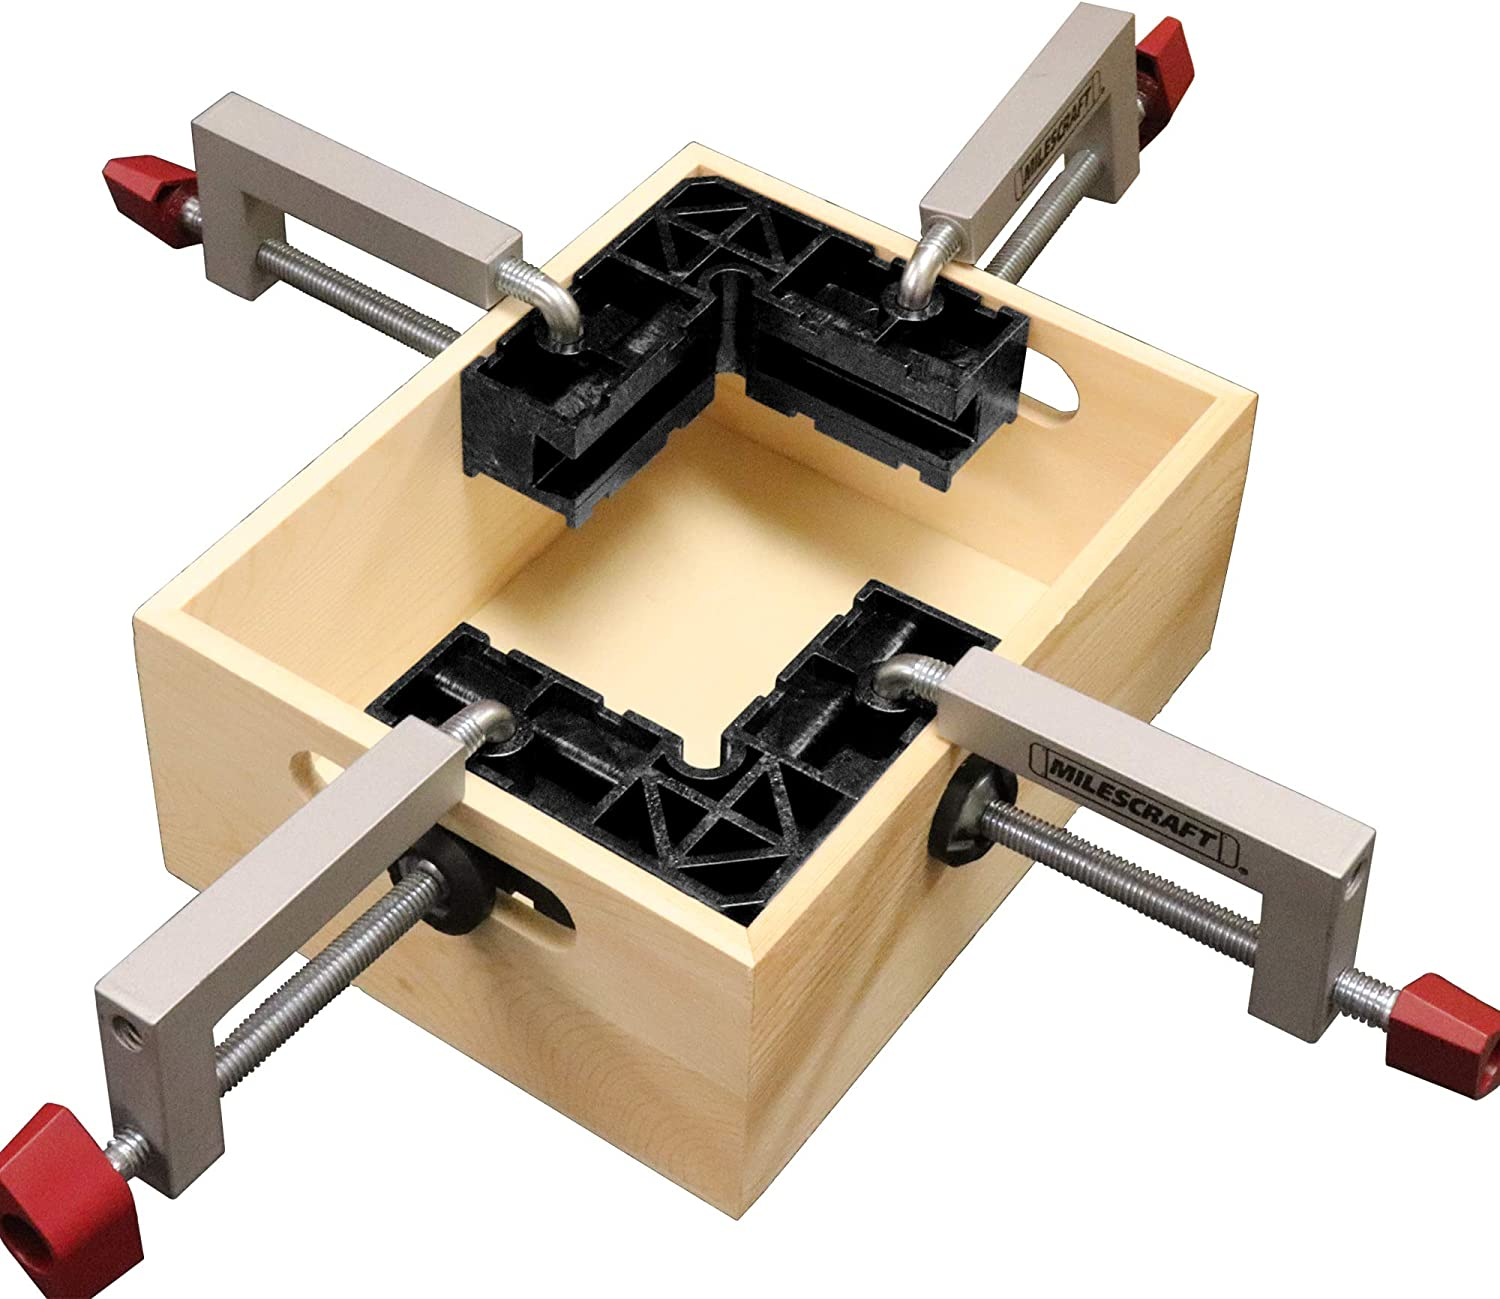 Positioning//Assembly Squares for Small Projects Jewelry Boxes Milescraft 4010 4 ClampSquares Etc Boxes